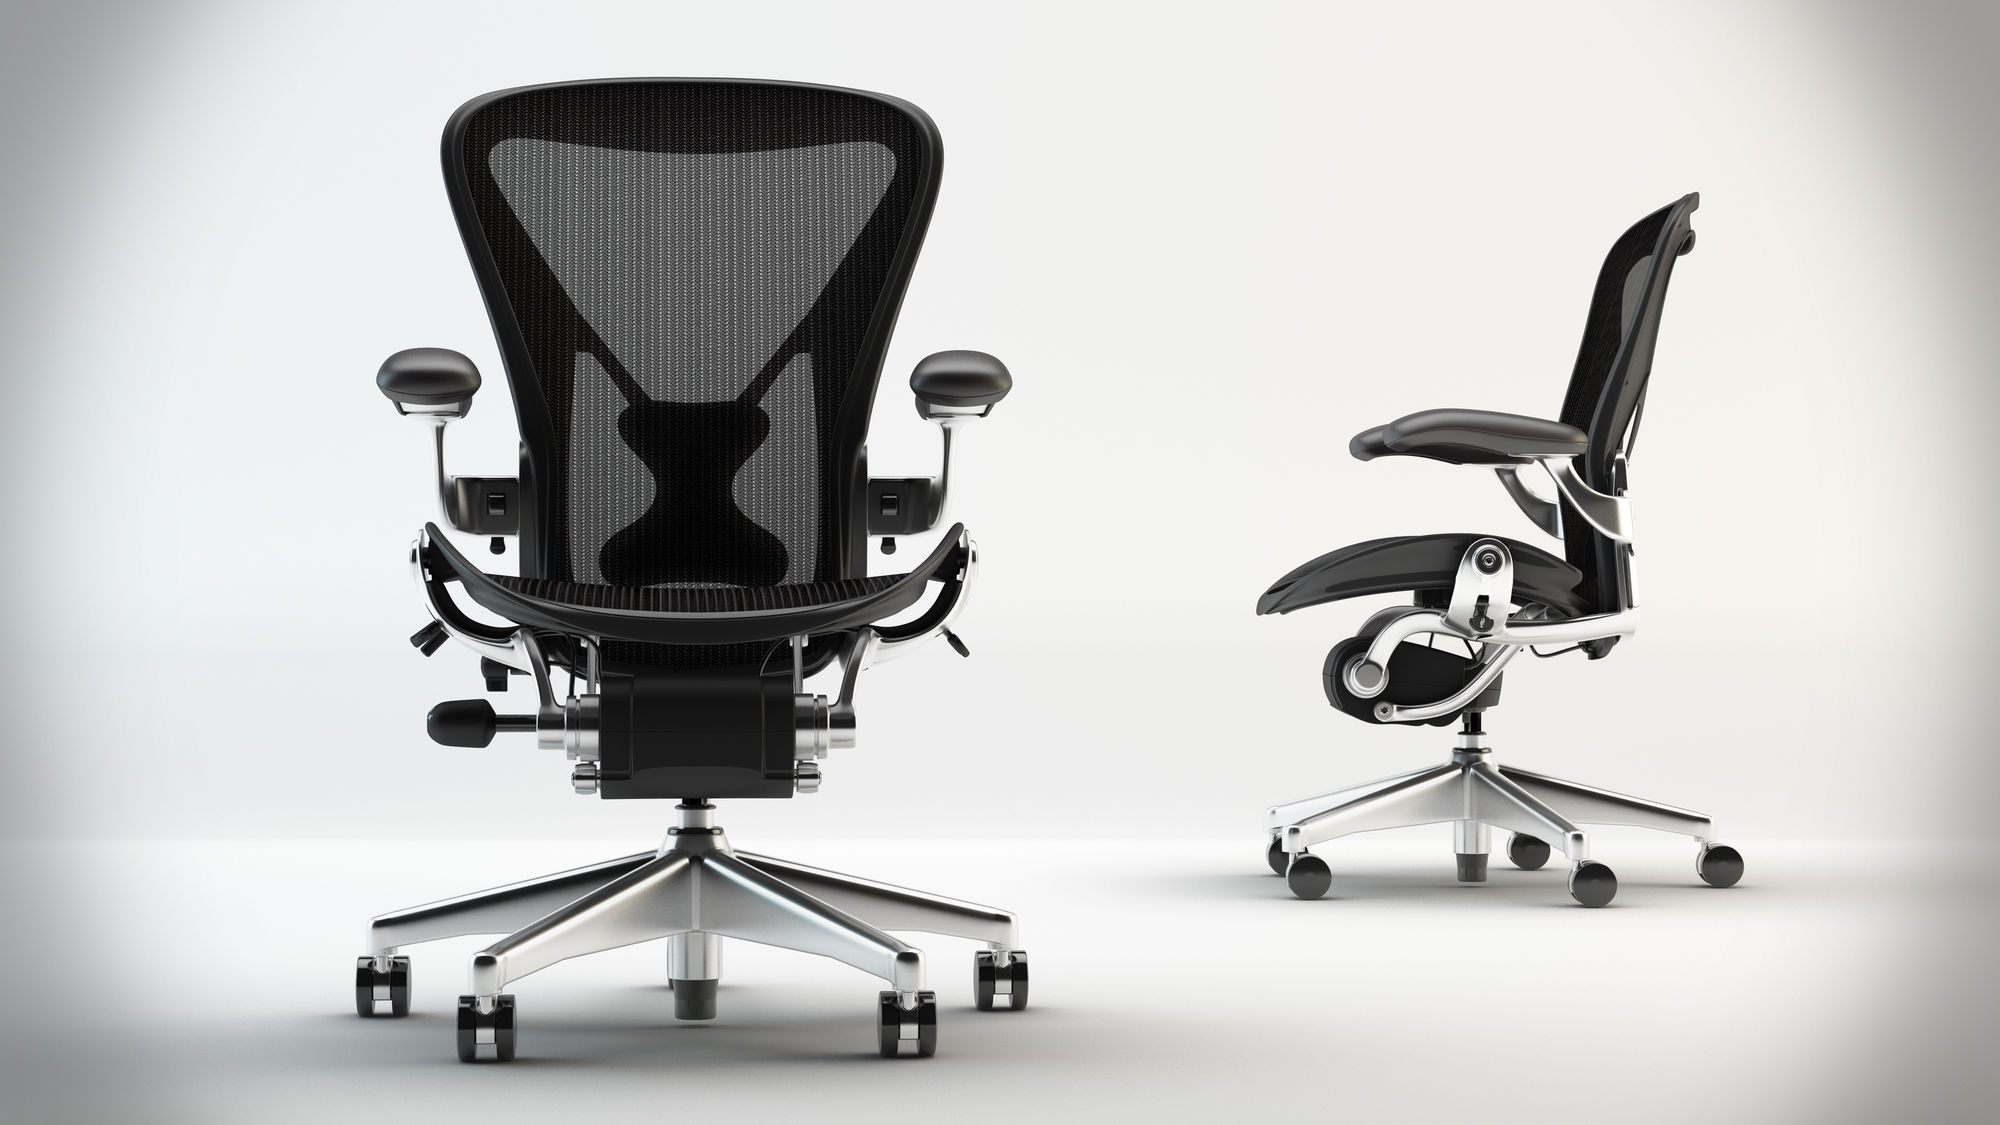 best chair for pc gaming 2016 tanning chairs walmart 10 in 2015 gamers decide aeron by herman miller